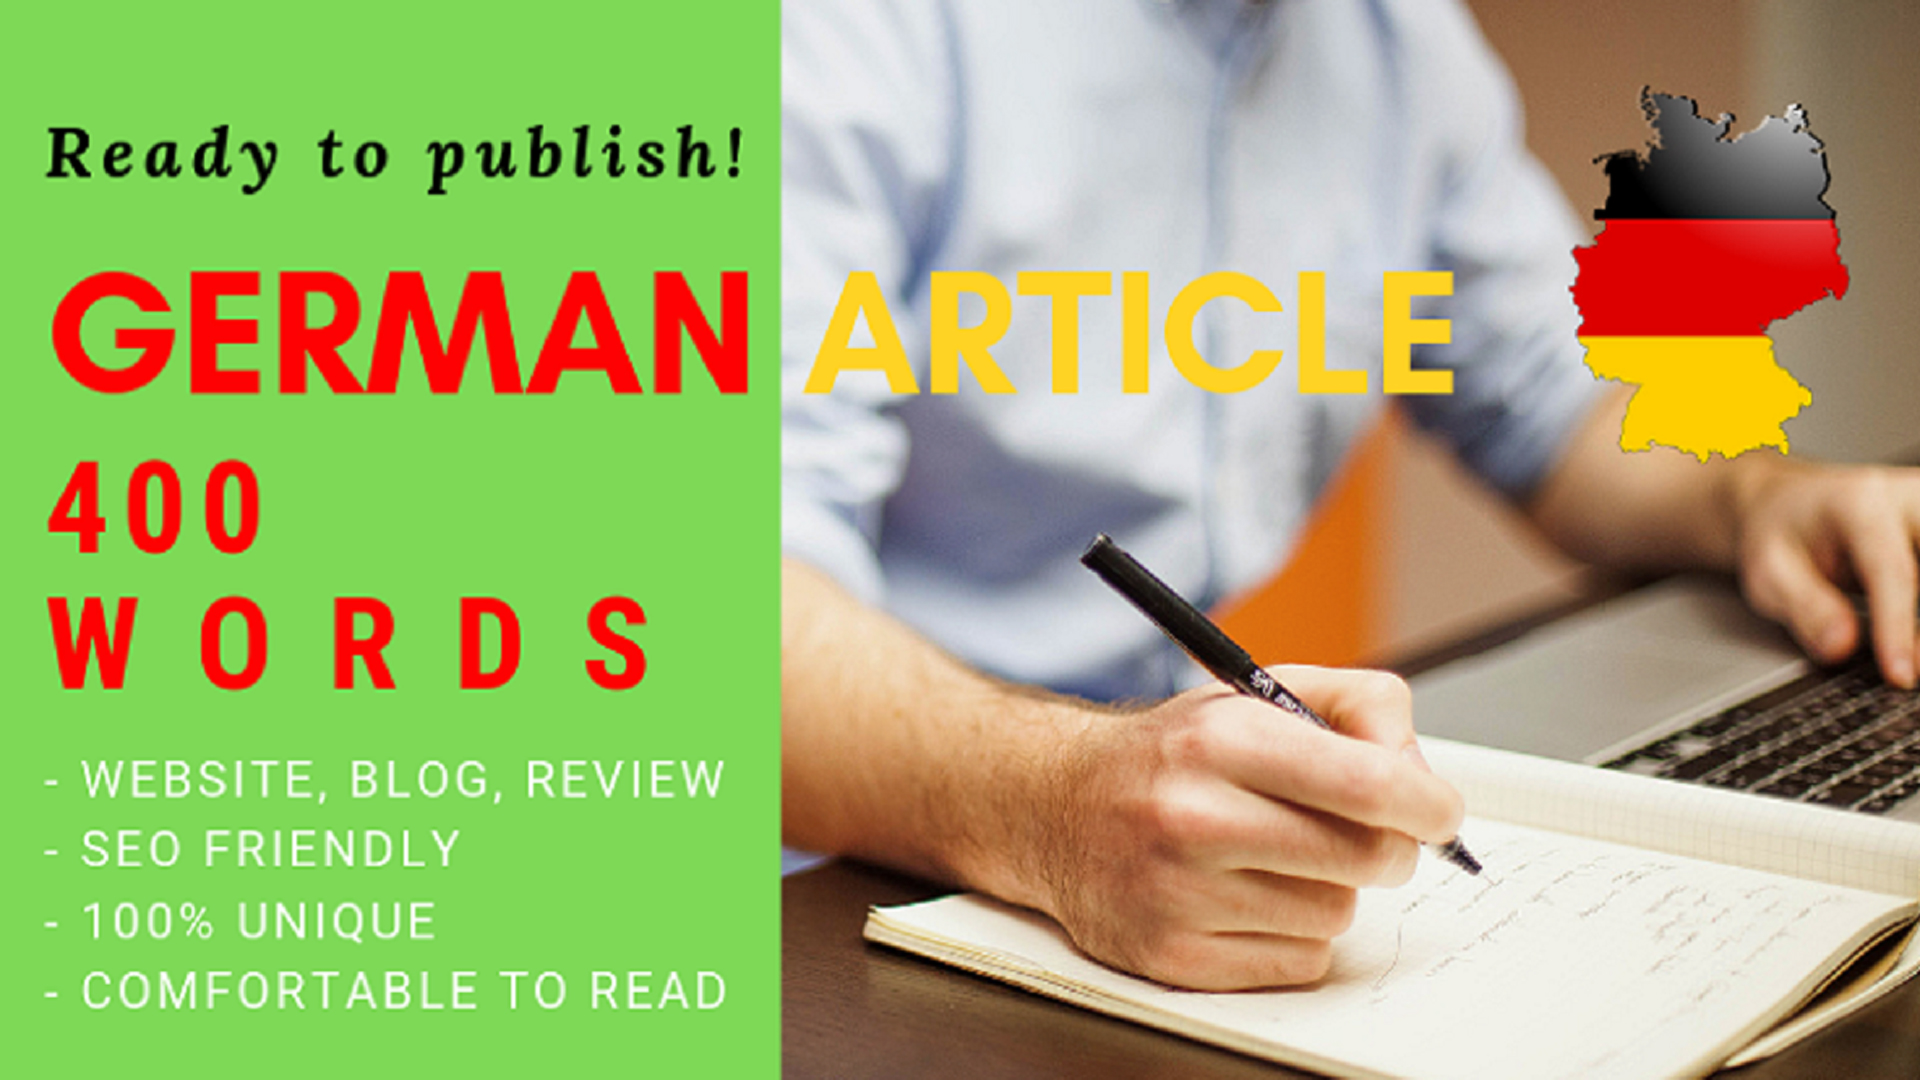 Write German article within 400 words or more